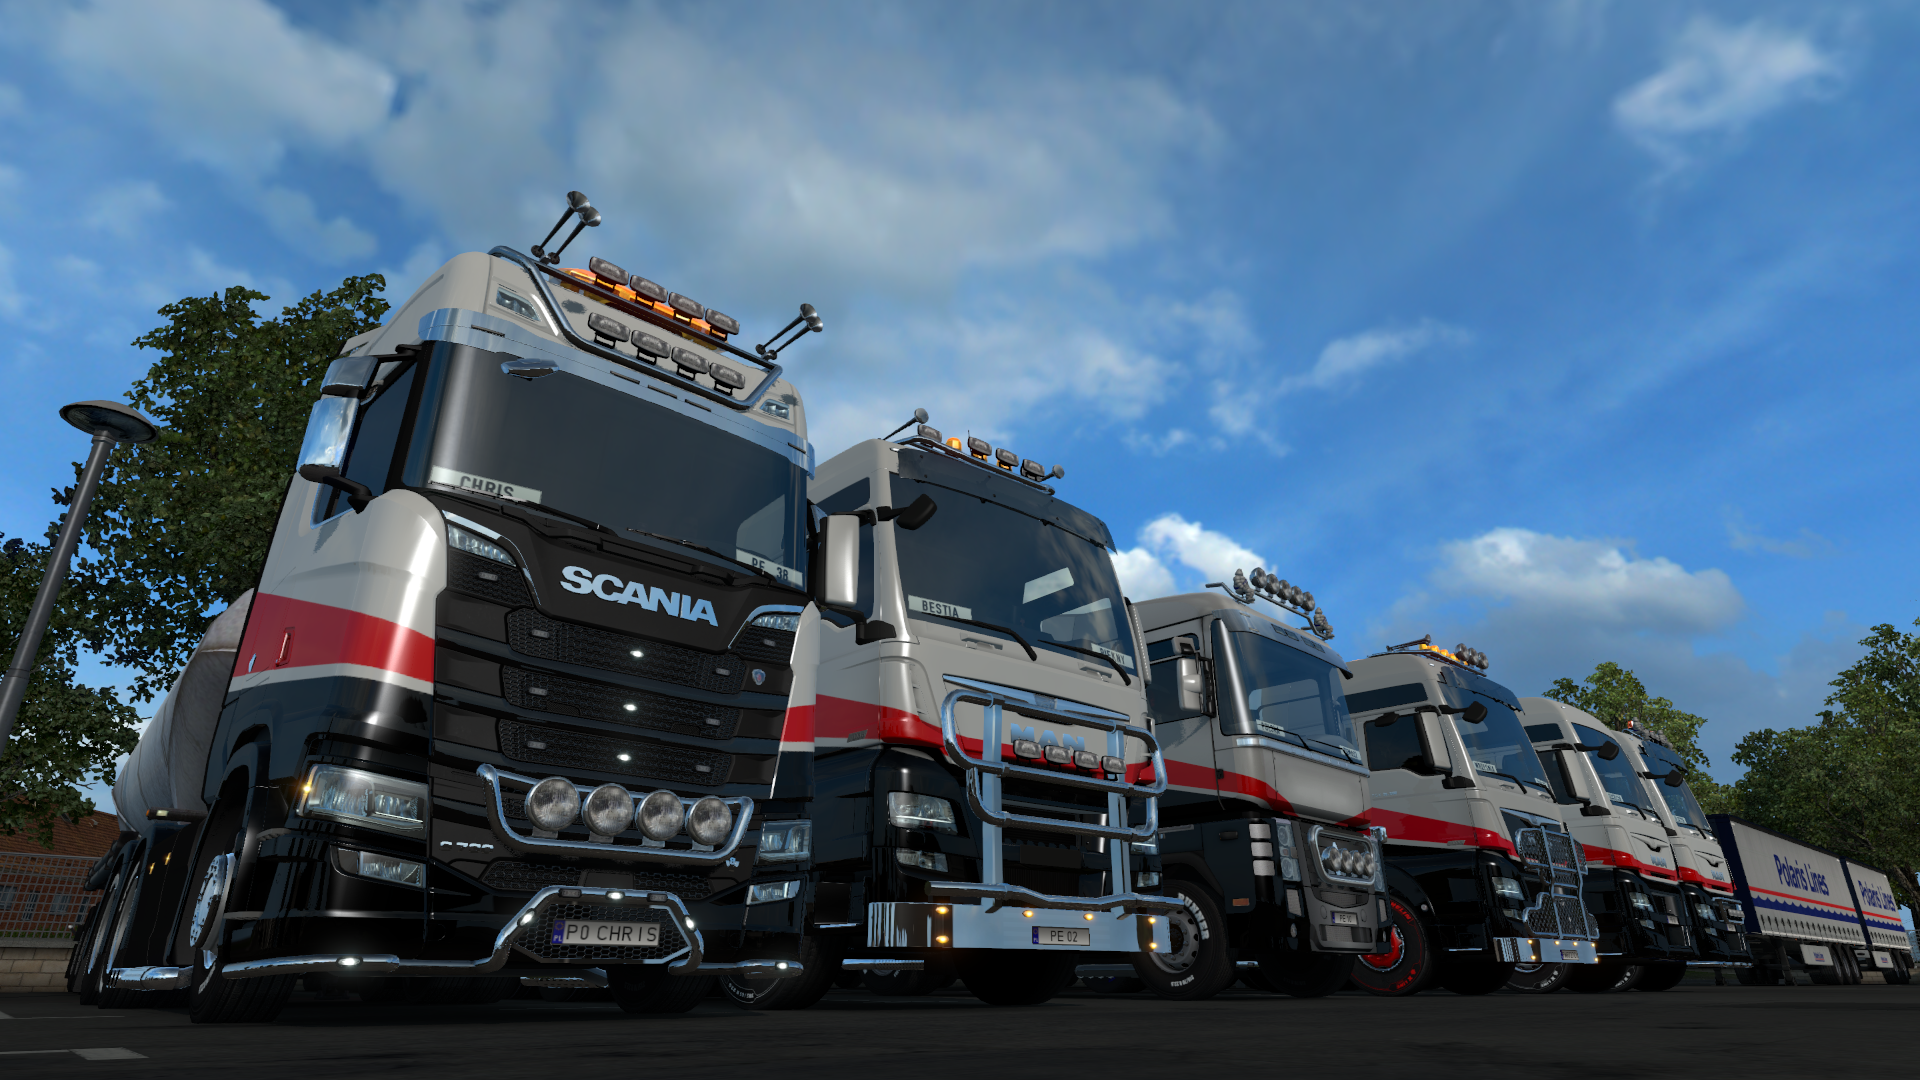 ets2_20190316_211911_00.png